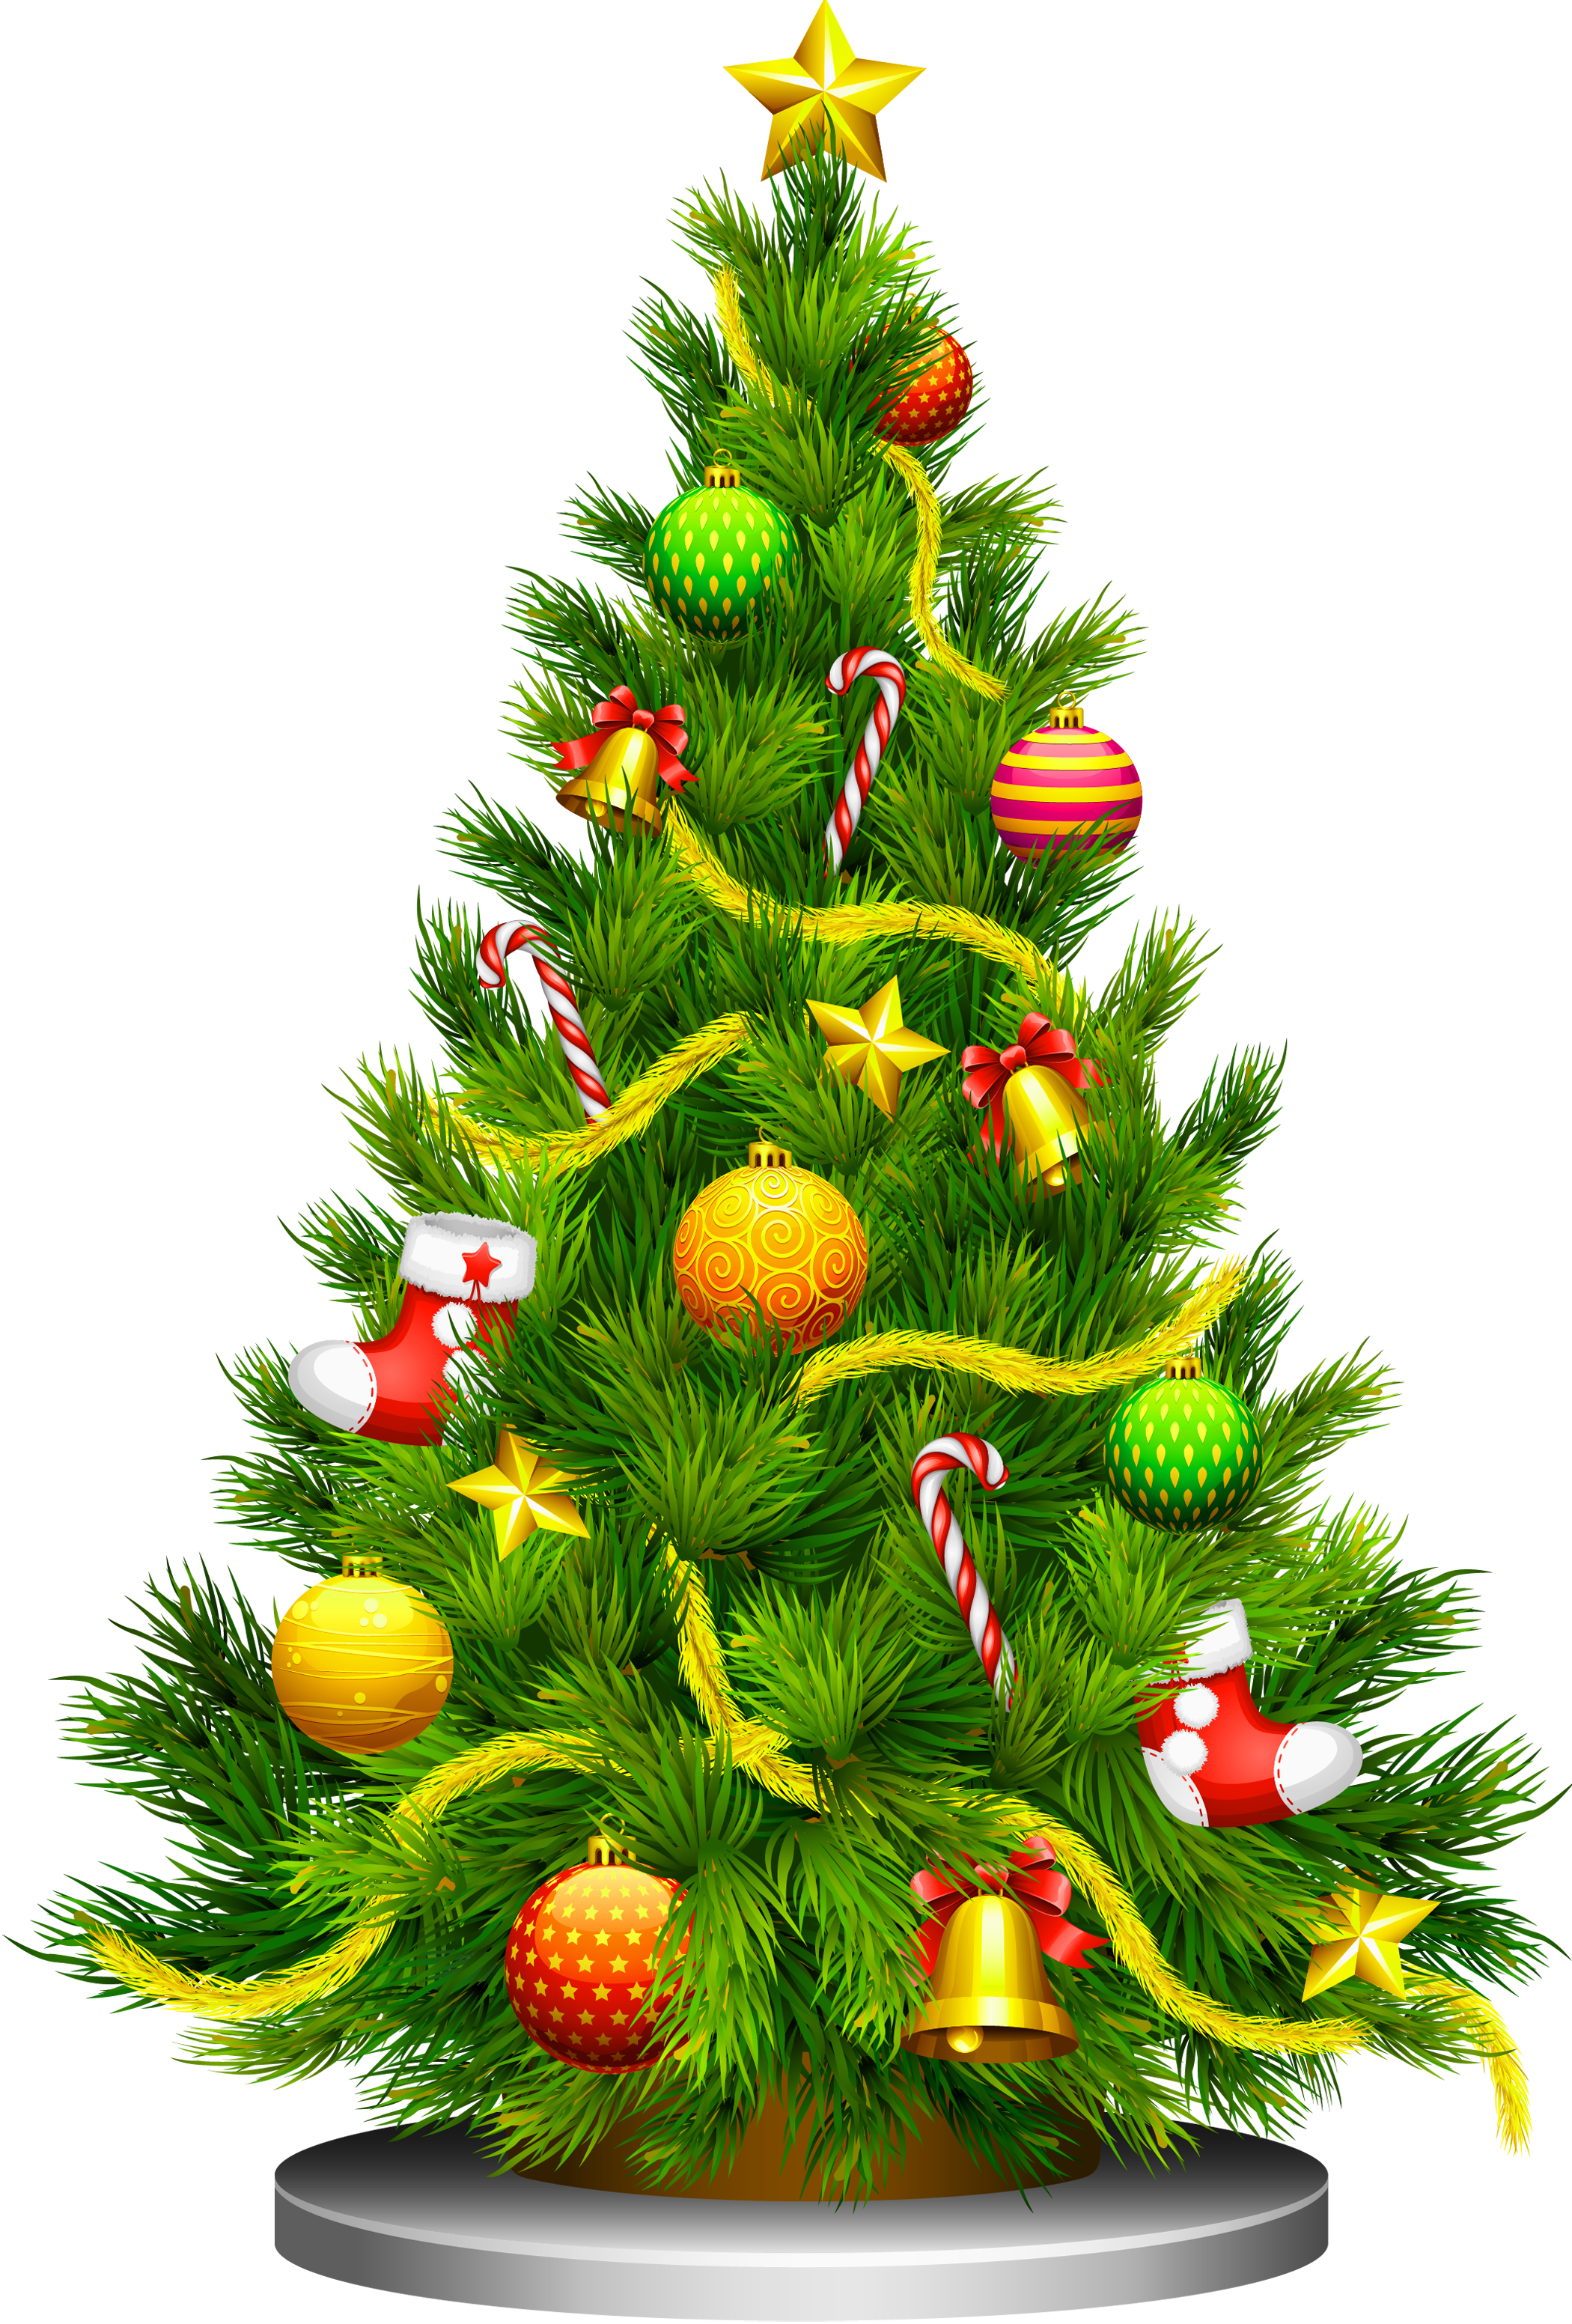 Transparent_Christmas_Tree_Clipart.png?m=1380751200.